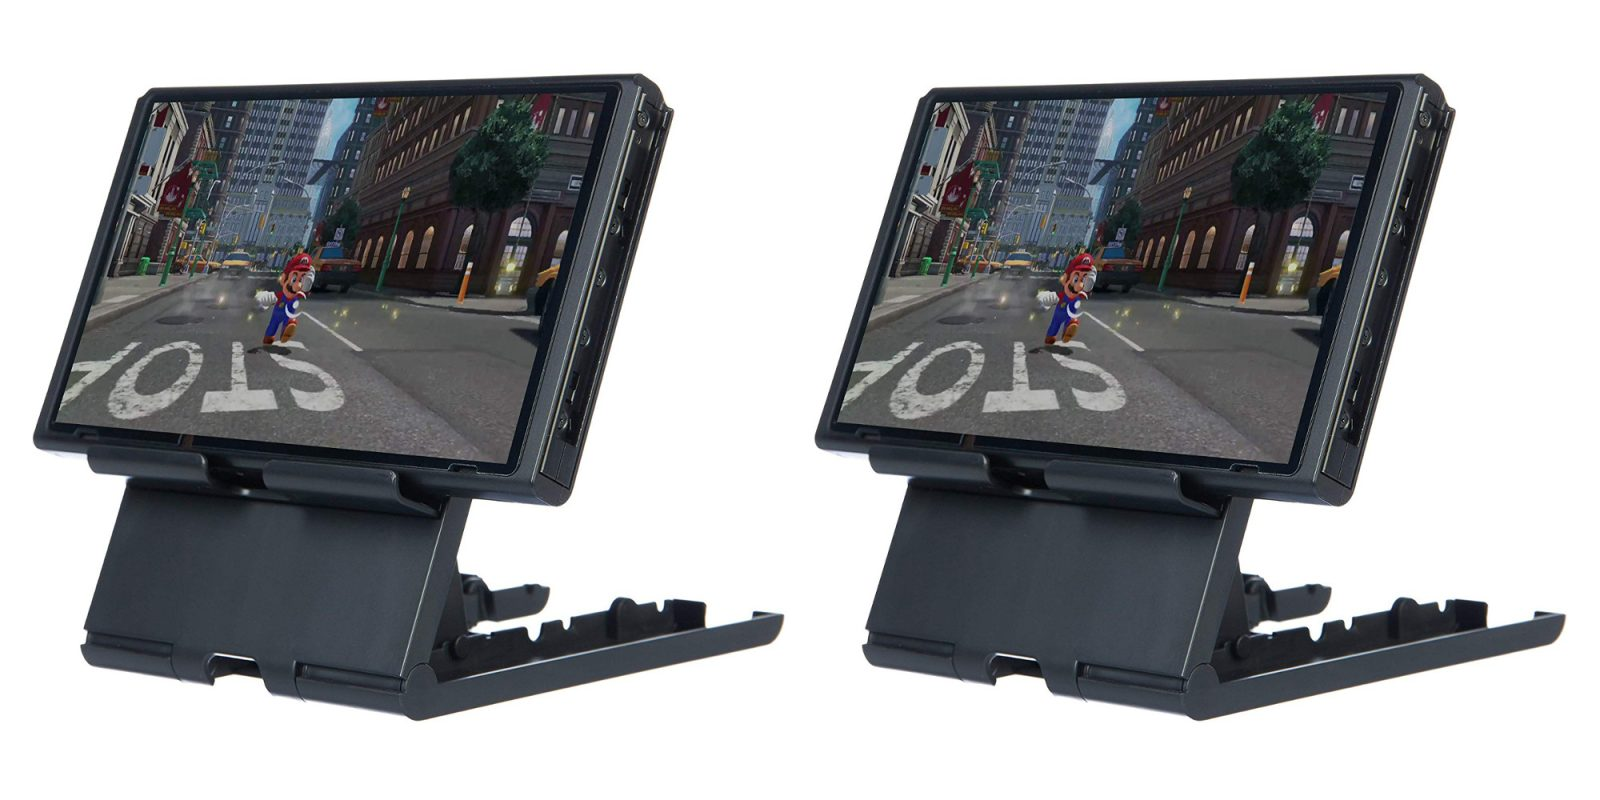 Perch your Switch up at the perfect angle with Amazon's Playstand for $6.50